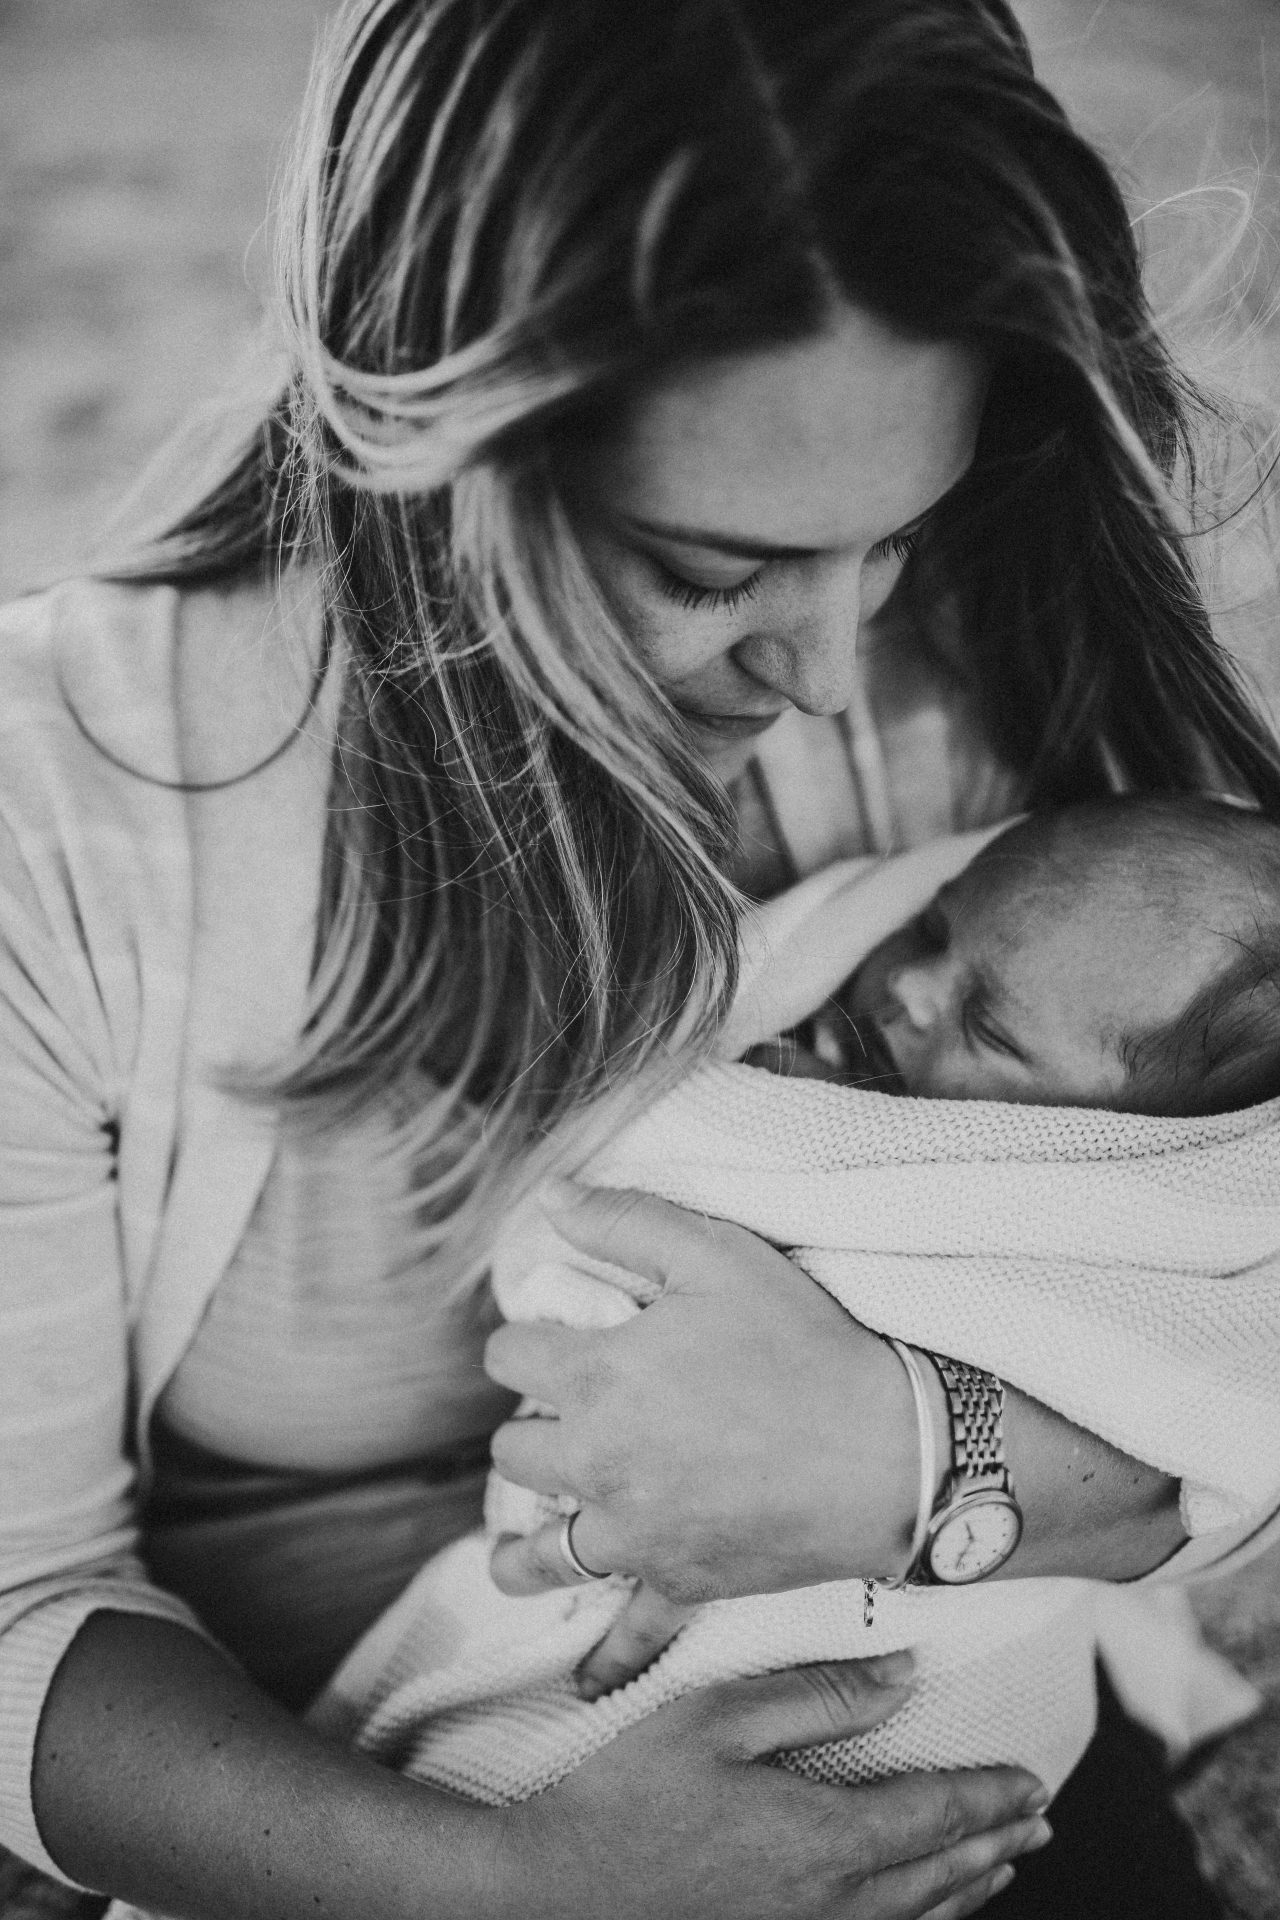 Black and white image of mother holding her baby girl close